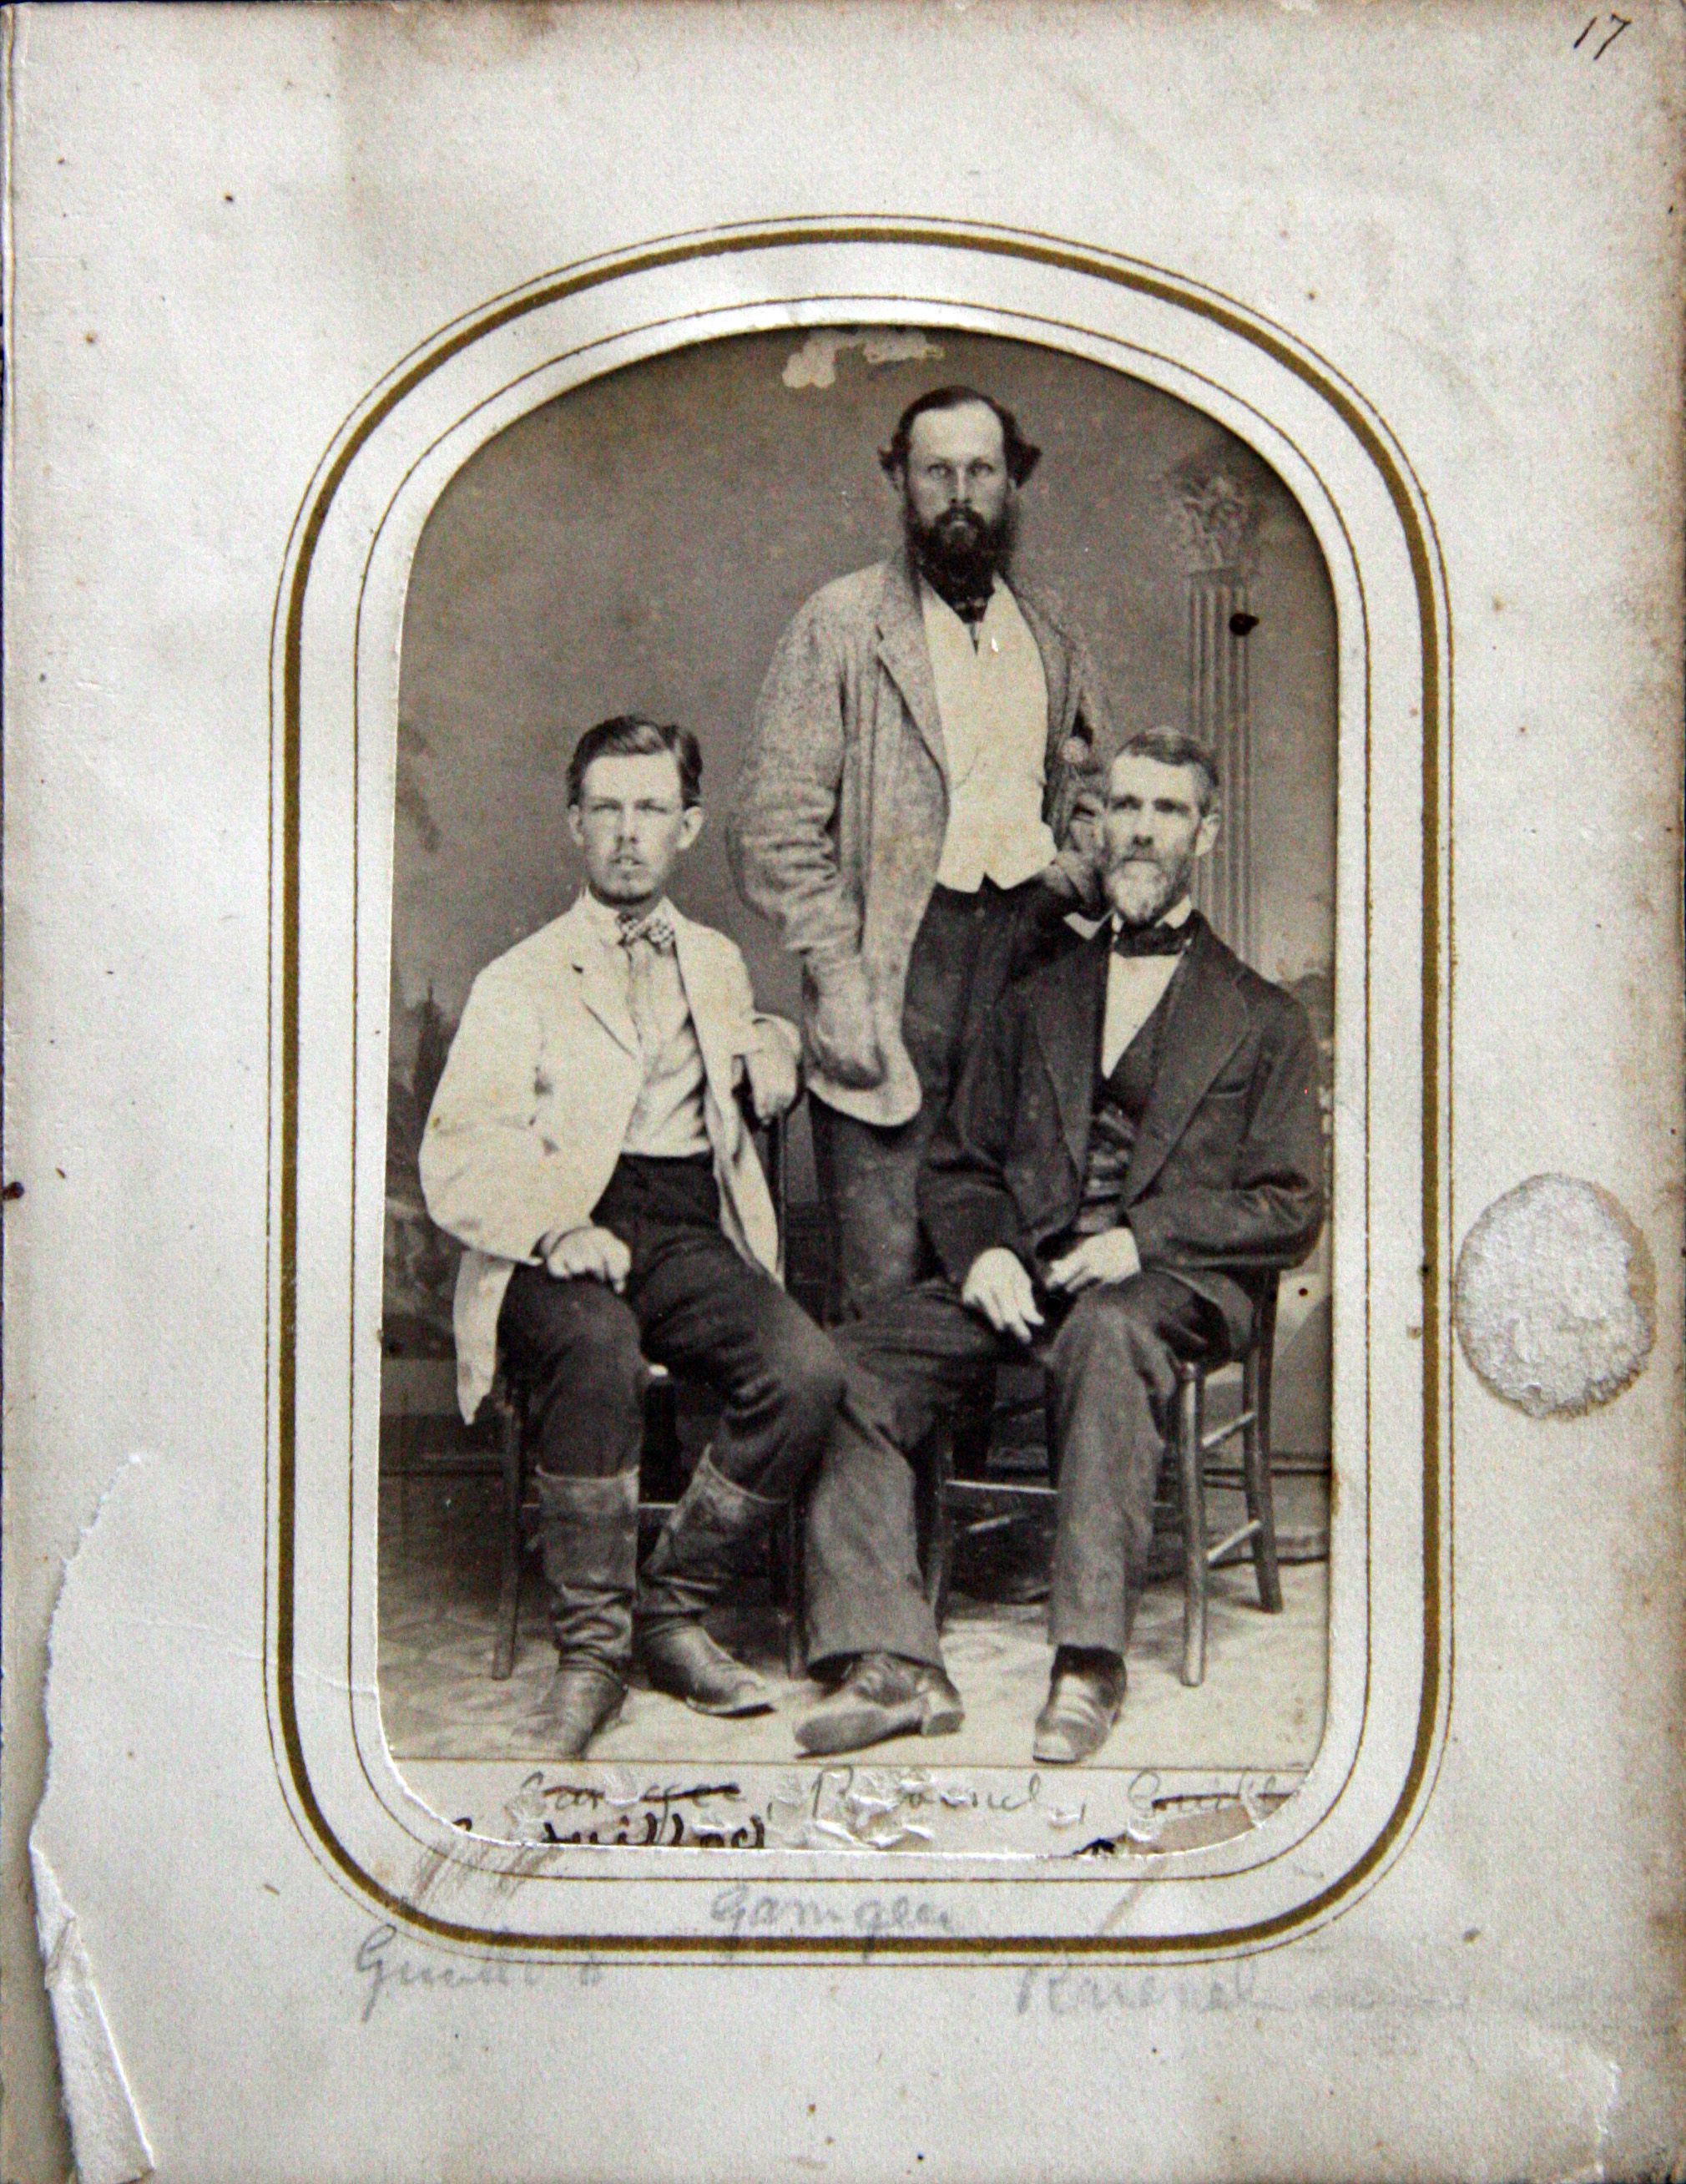 Peter Gaillard, John Gamgee, and Henry William Ravenel